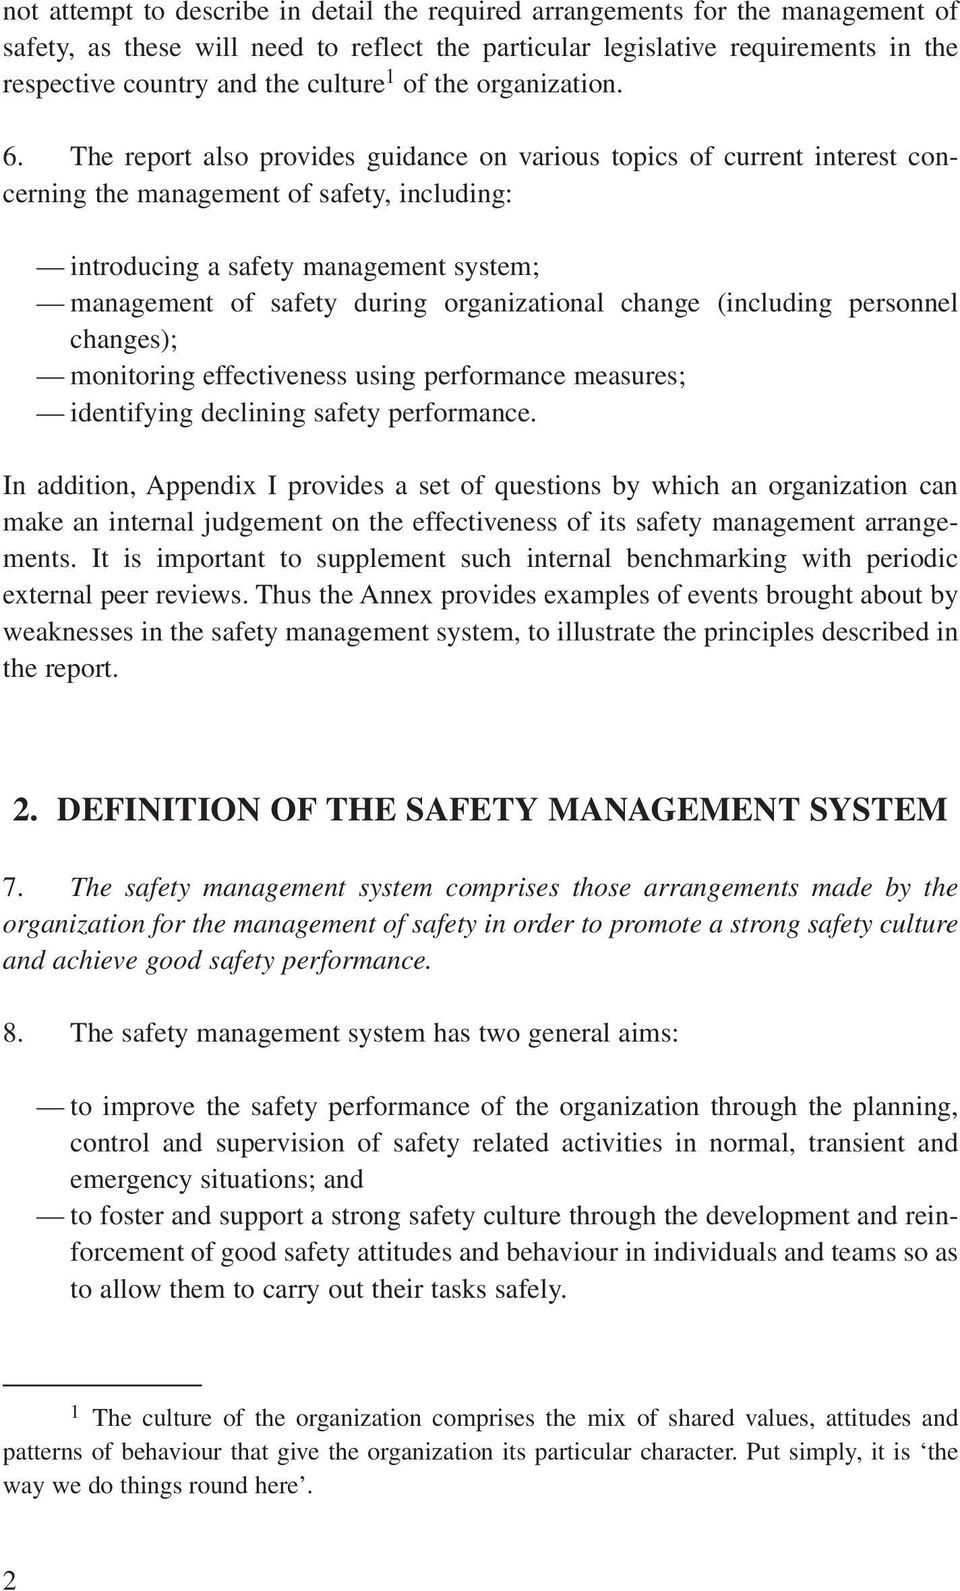 The report also provides guidance on various topics of current interest concerning the management of safety, including: introducing a safety management system; management of safety during